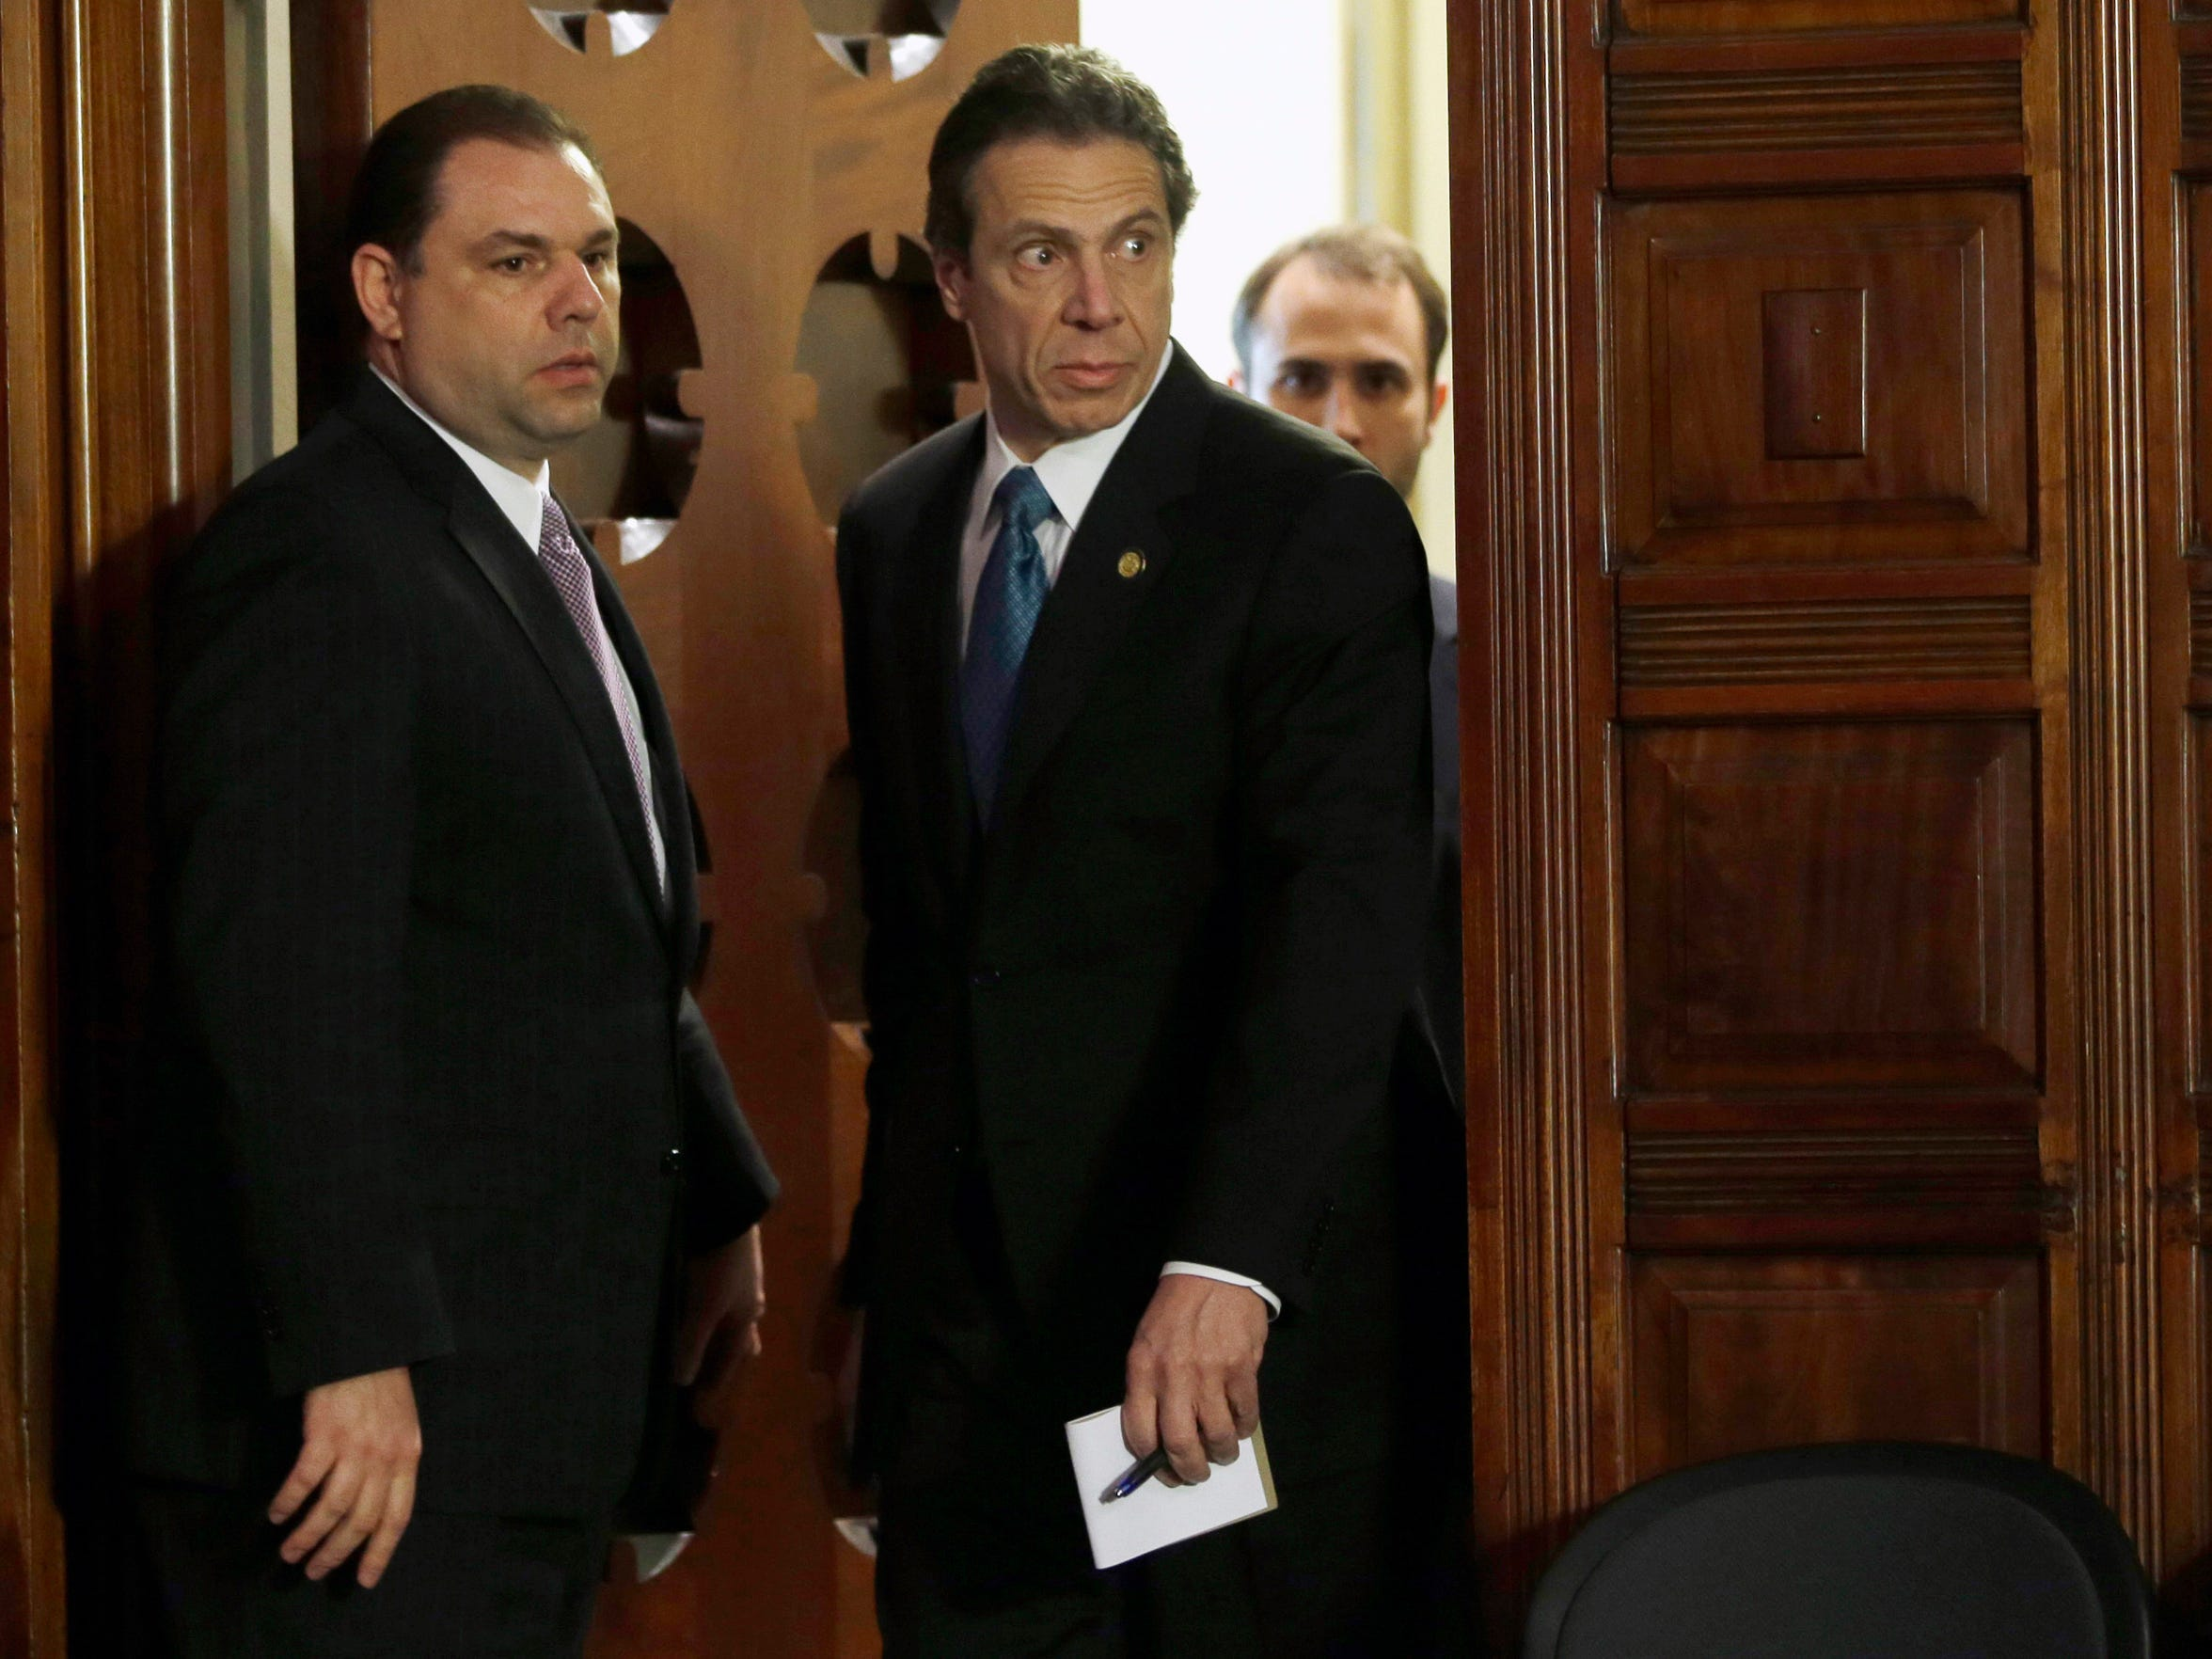 Gov. Andrew Cuomo's former top aide Joseph Percoco is set to be sentenced later this year in a bribery scandal involving some of the governor's top donors.